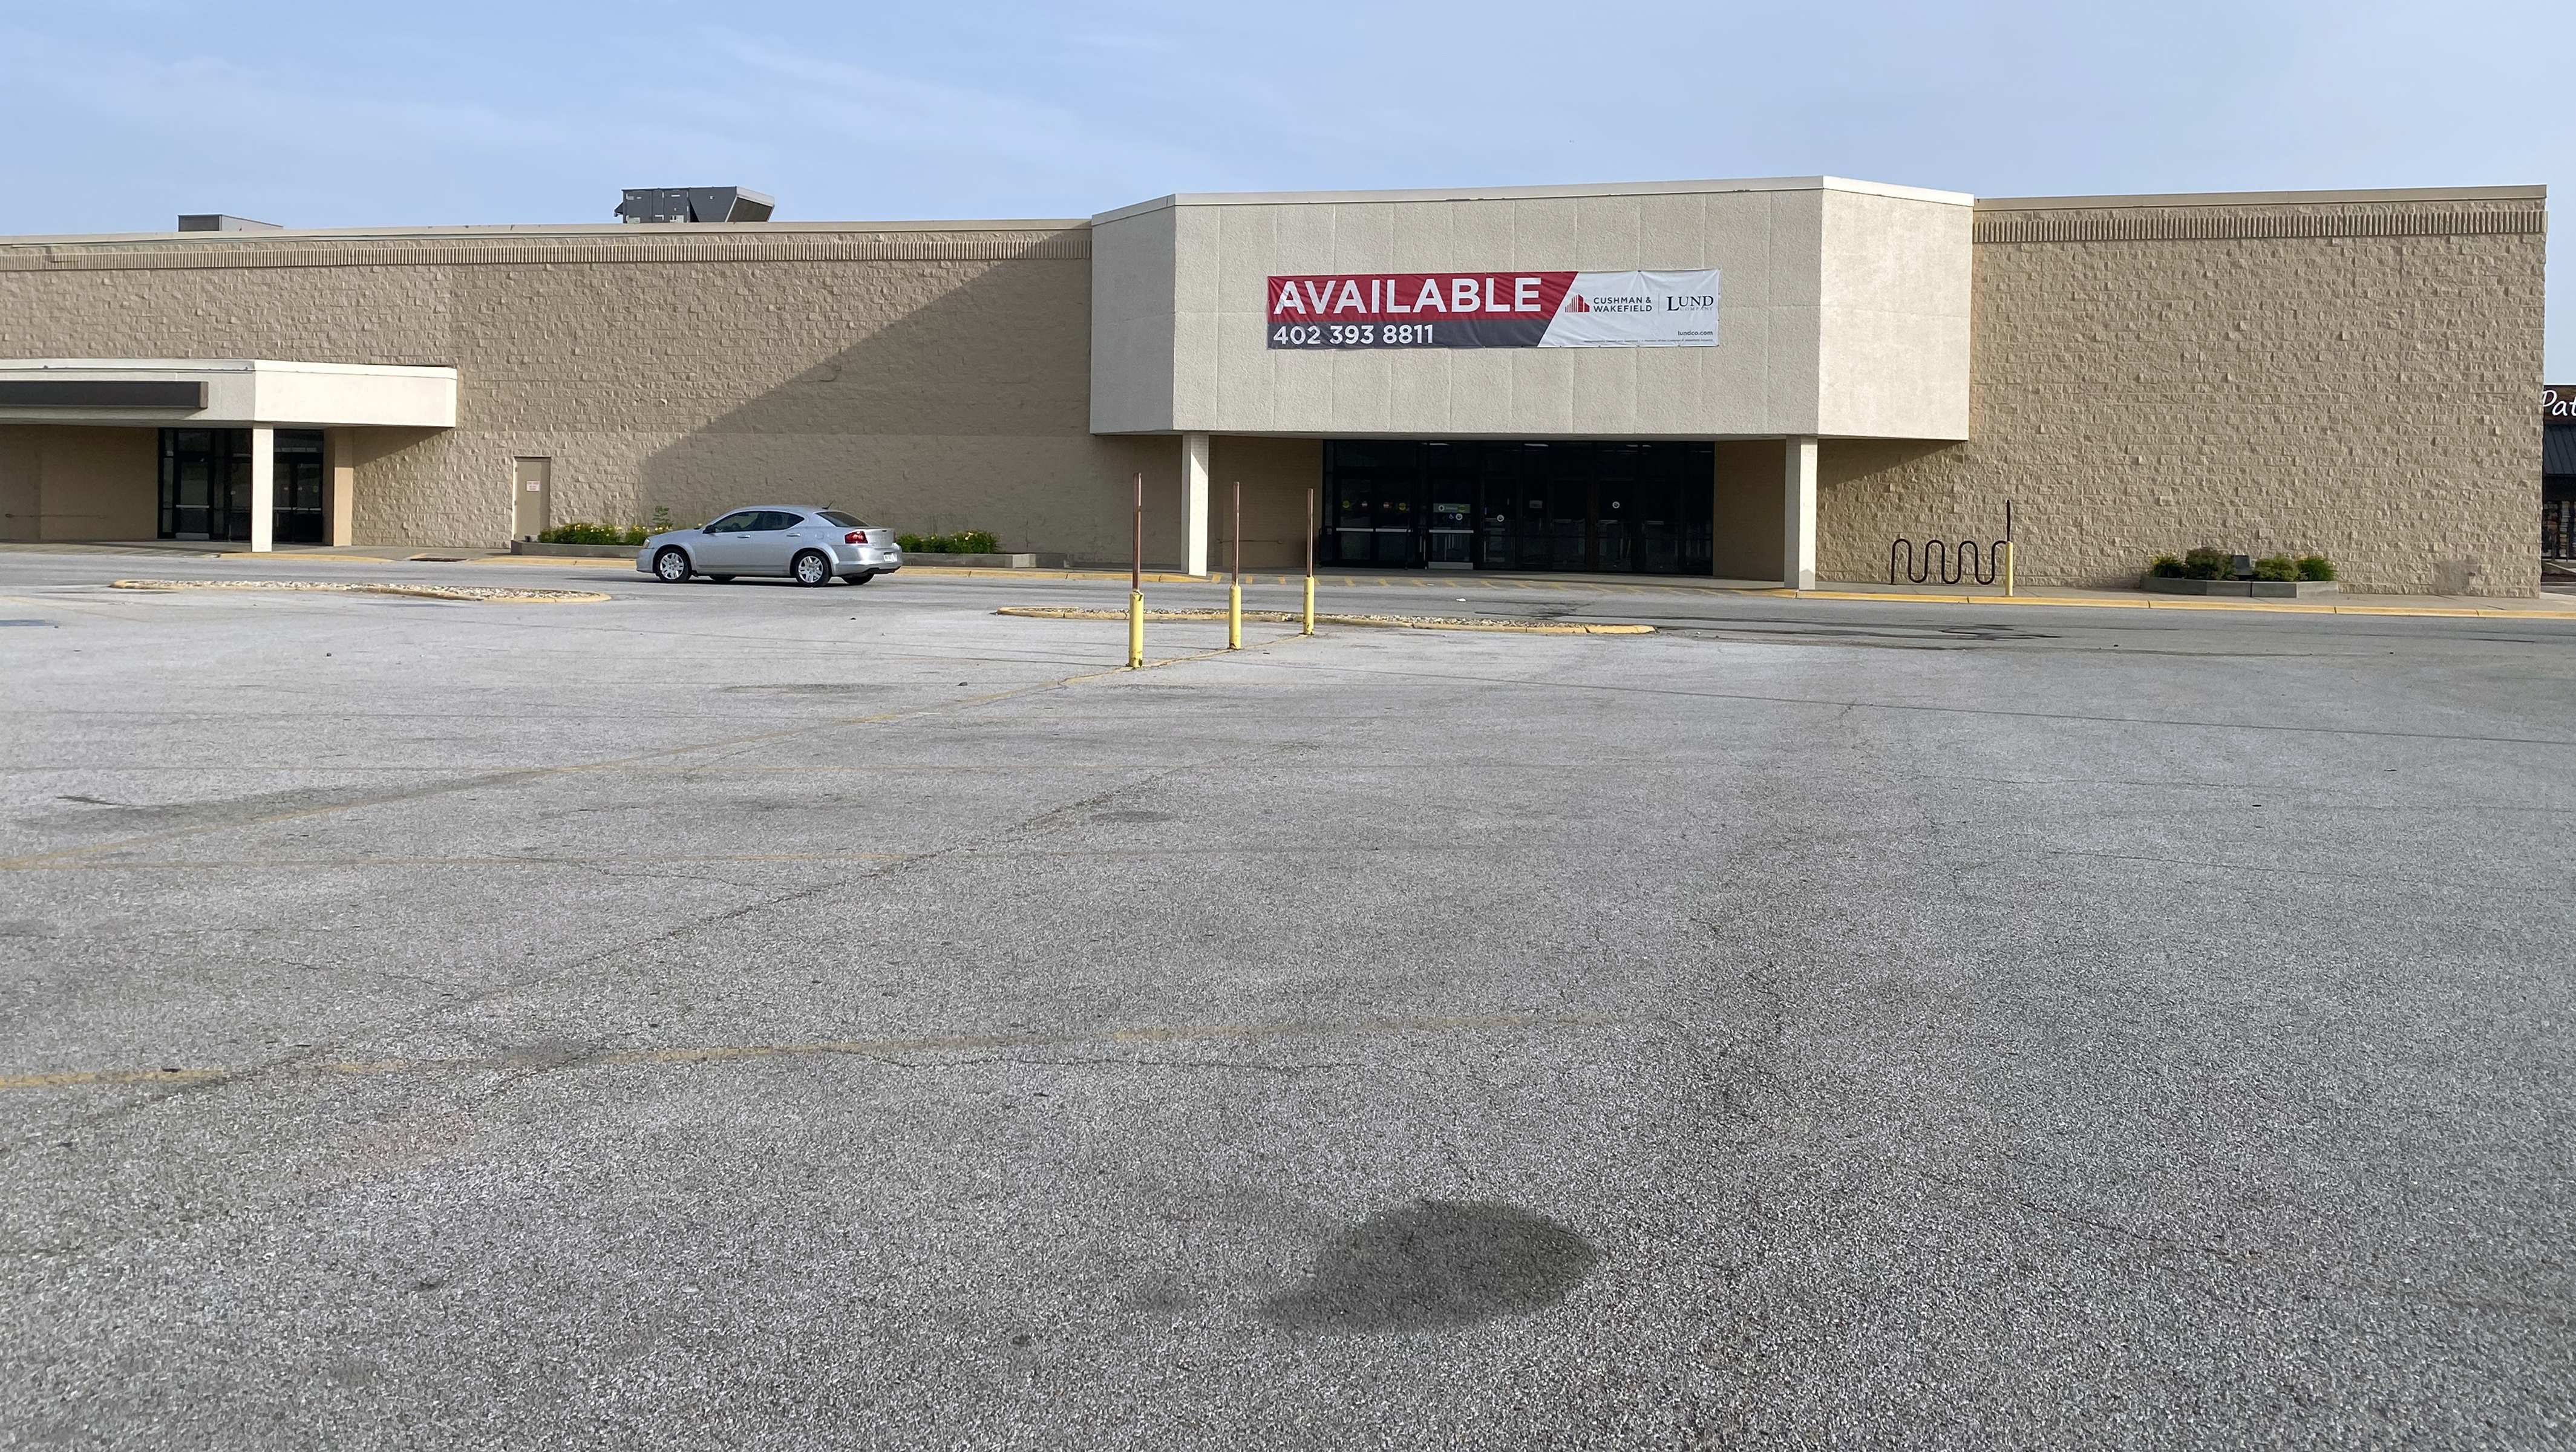 Above, a car drives by a former Shopko store at 14445 W. Center Road that is listed for sale Sunday, June 28, 2020. Across the country, such signs are expected to be seen more frequently as the real estate industry struggles. (Scott Stewart)